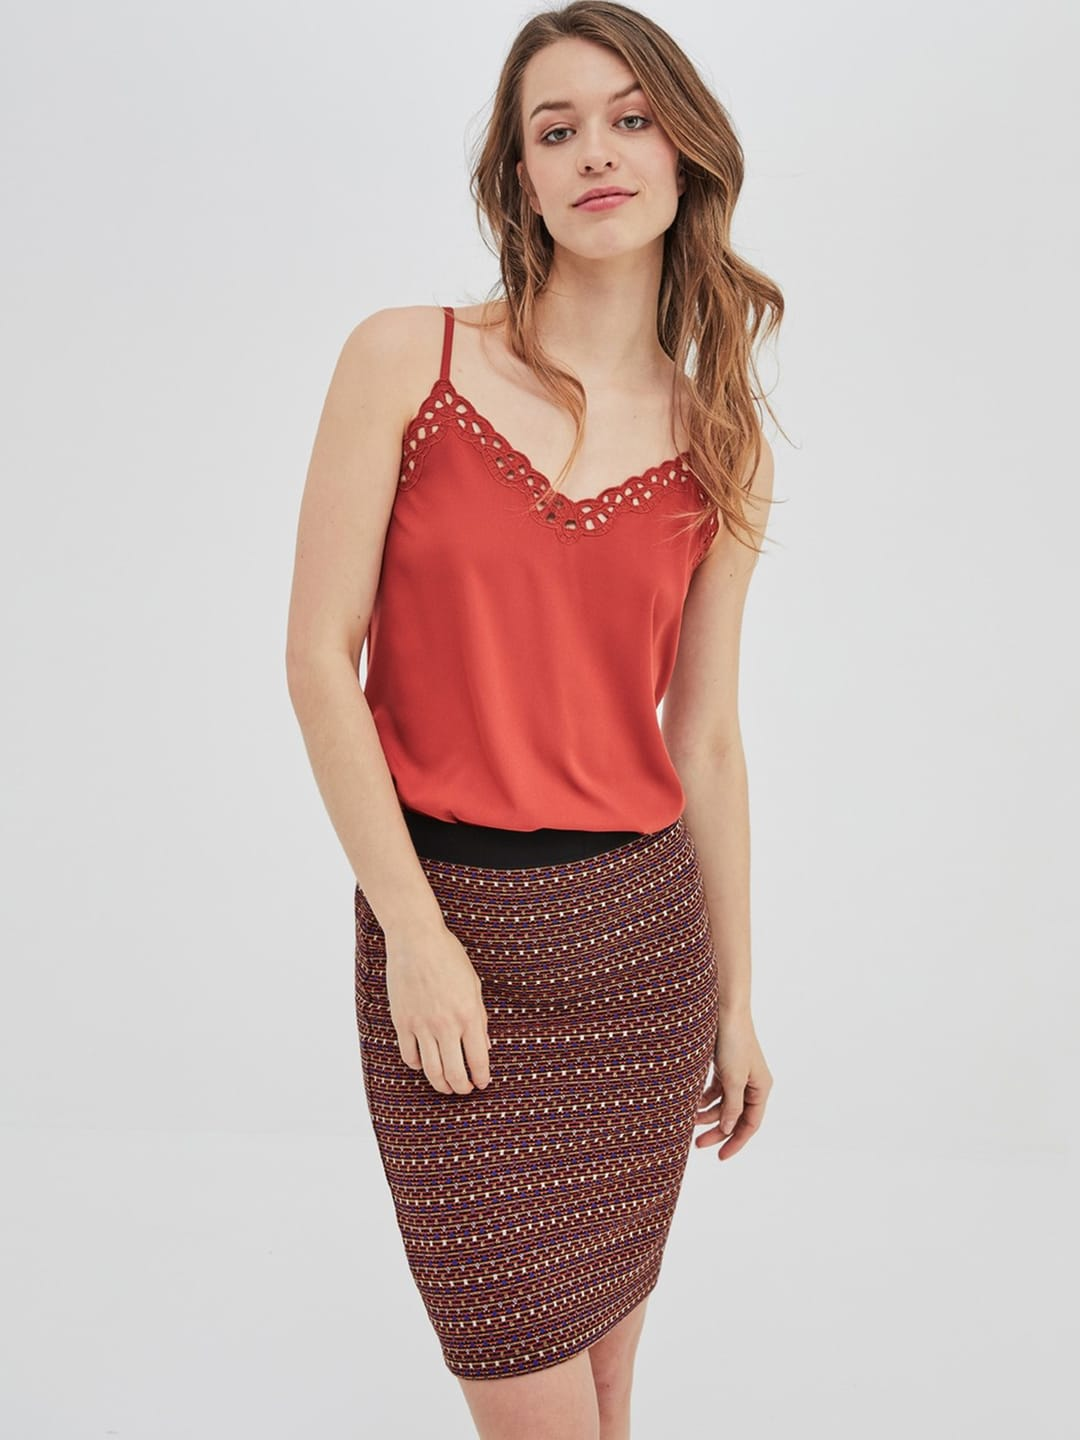 5d4c7cc770ba Promod Skirts - Buy Promod Skirts online in India